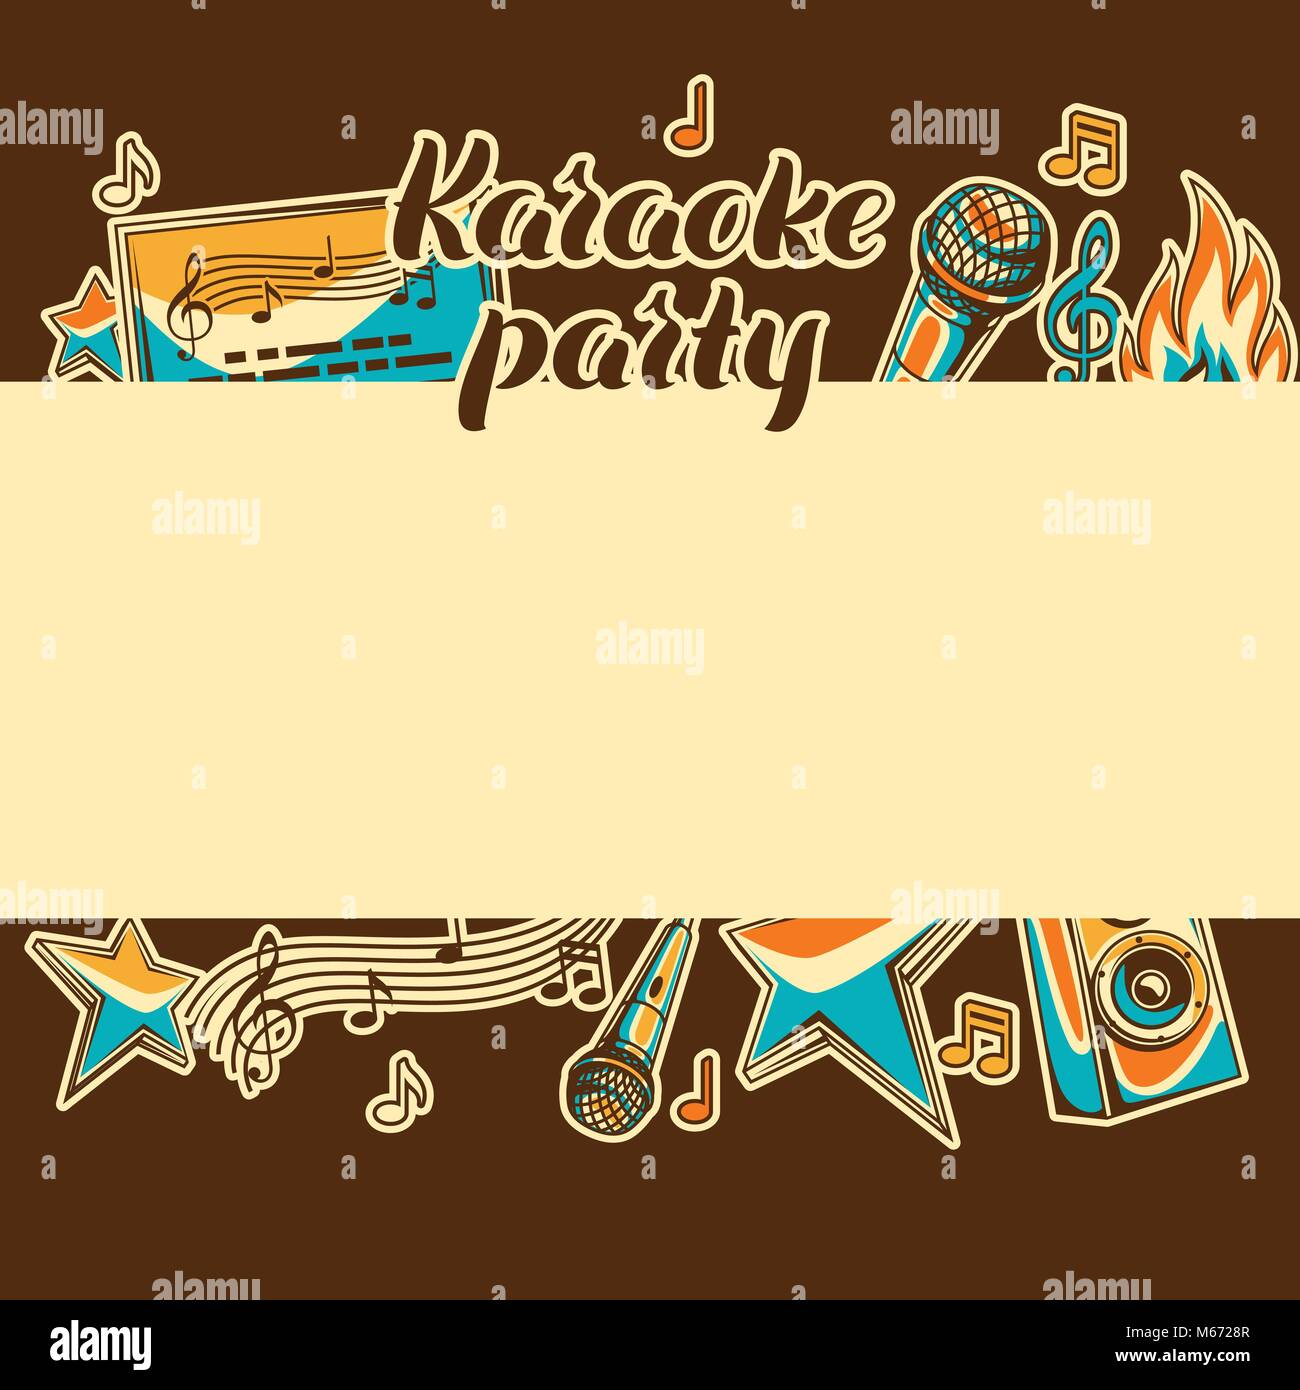 Karaoke Party Card Music Event Background Illustration In Retro